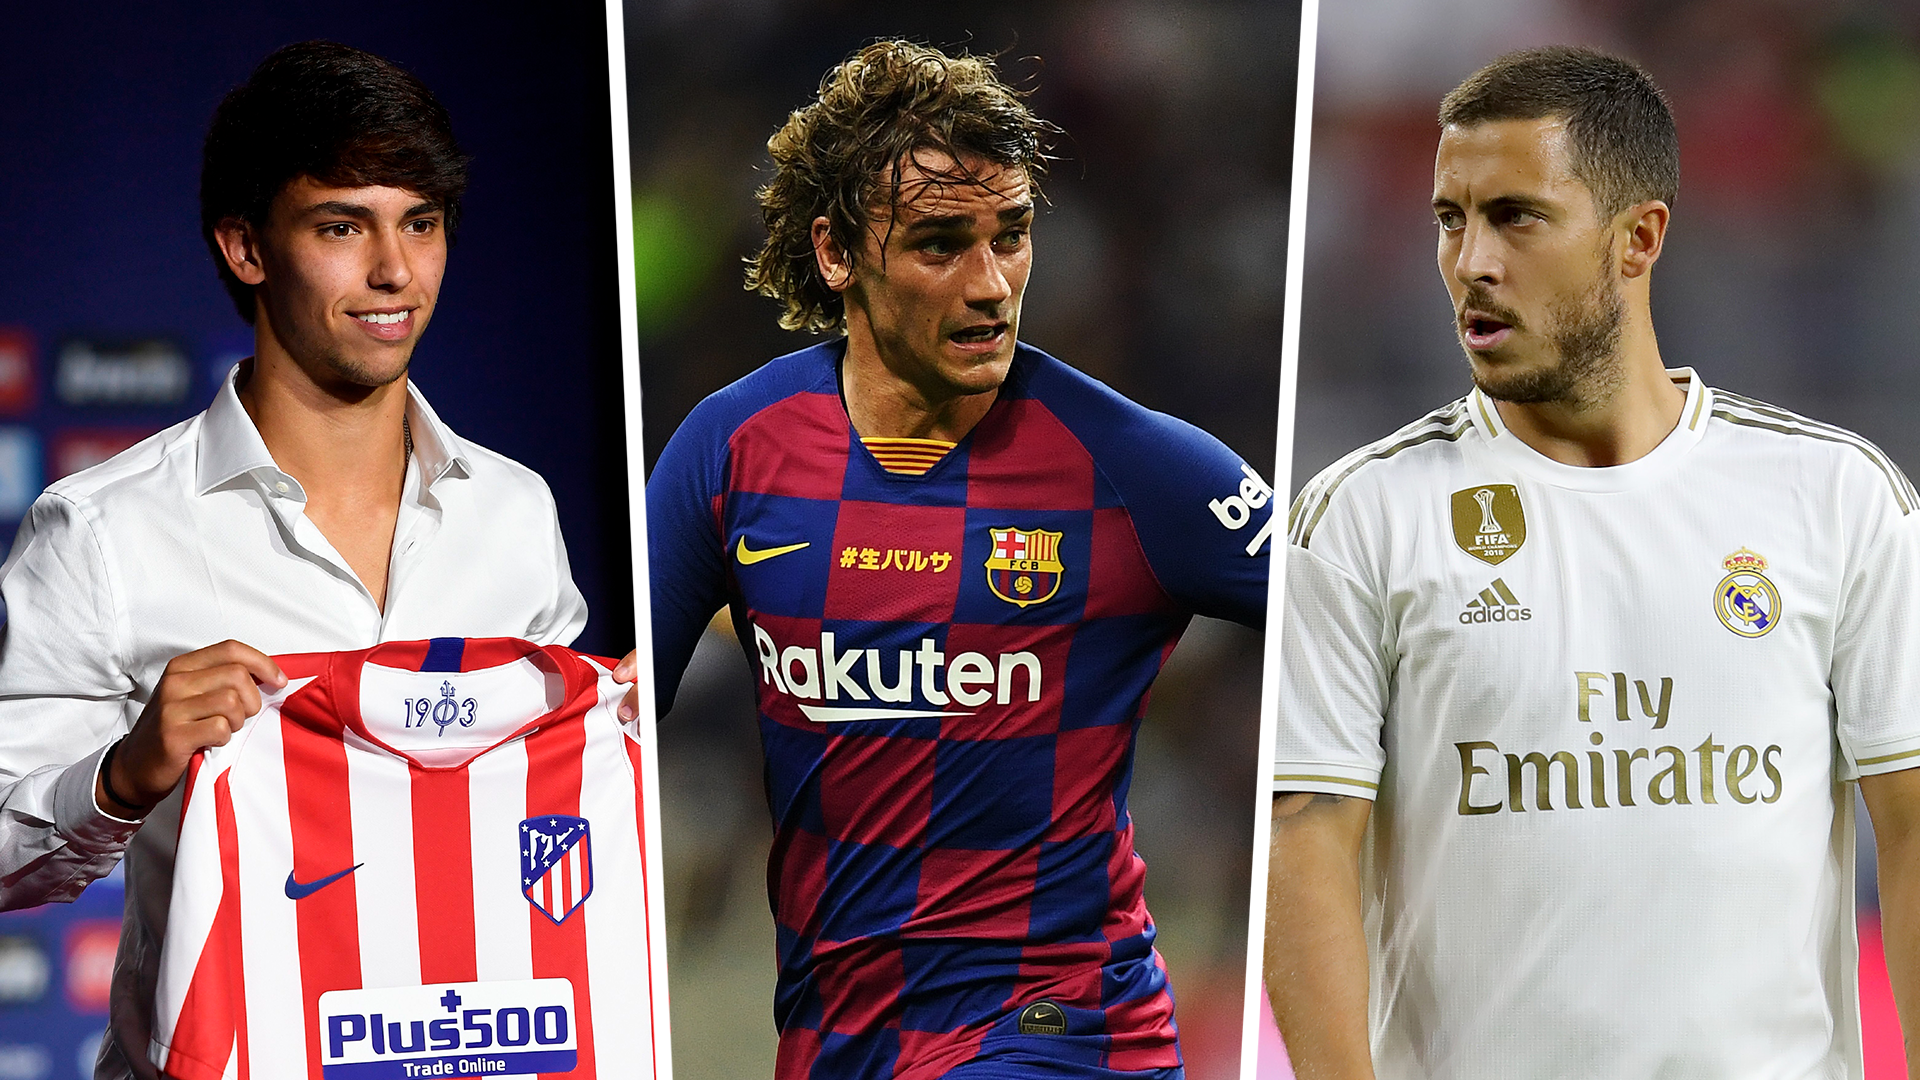 Transfer news: Real Madrid, Barcelona & La Liga's €1 billion